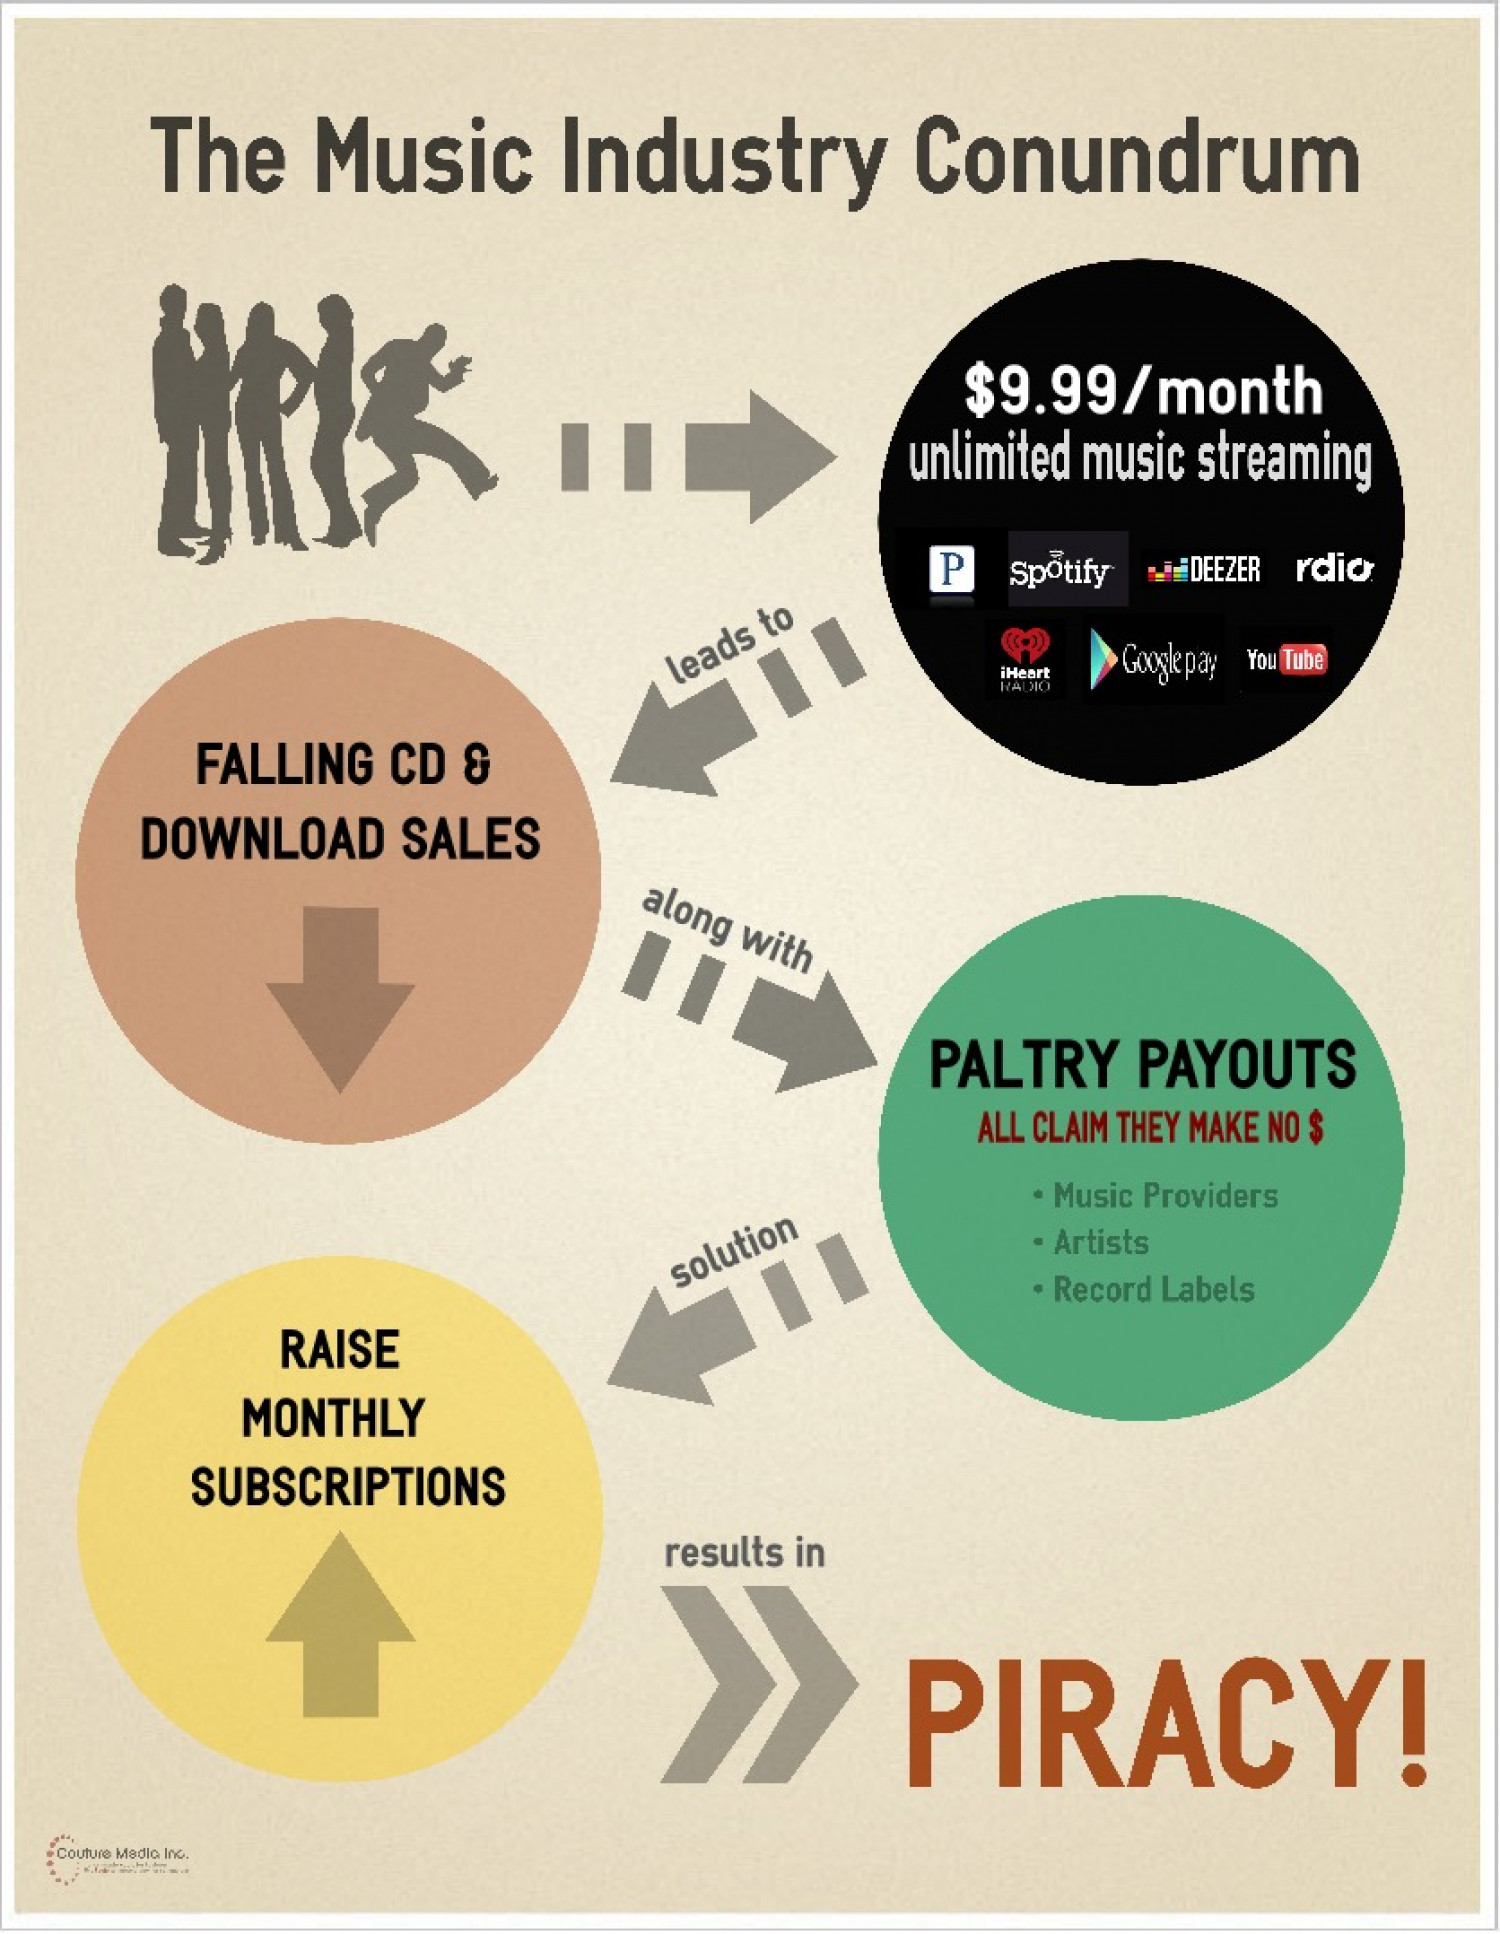 Music Industry Conundrum Infographic